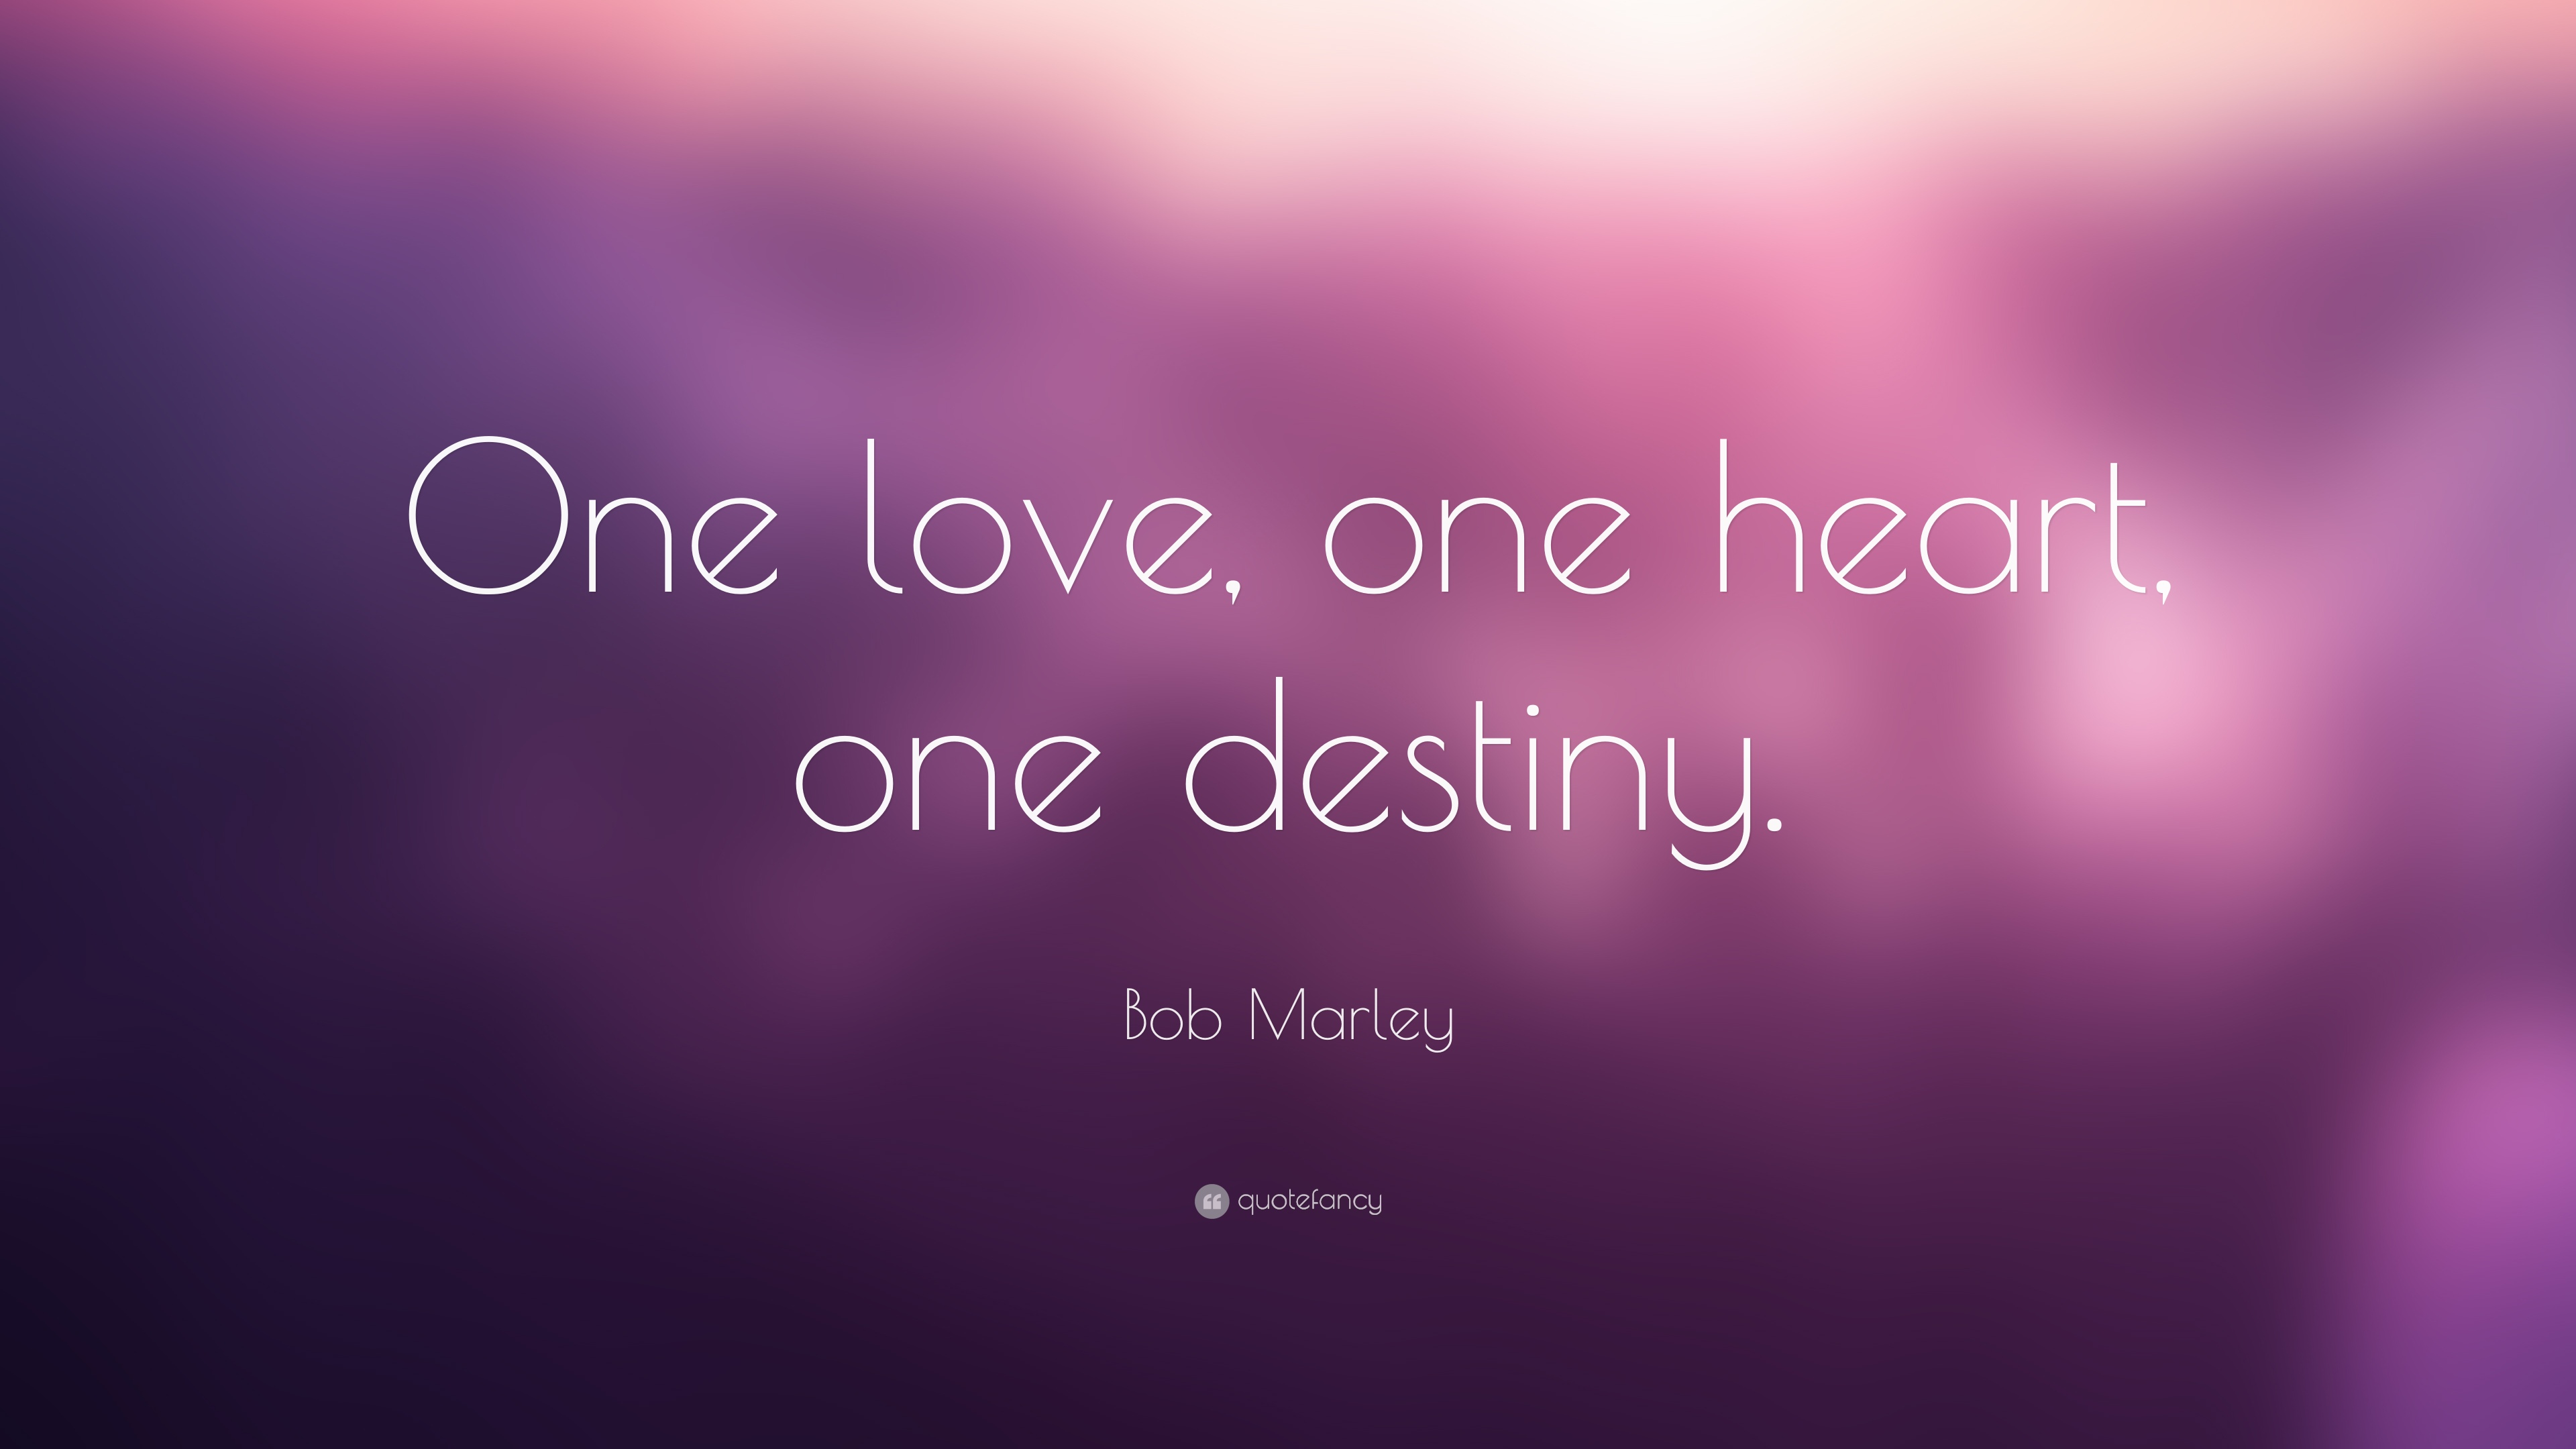 Love Quotes With Pictures : Love Quotes (26 wallpapers) - Quotefancy